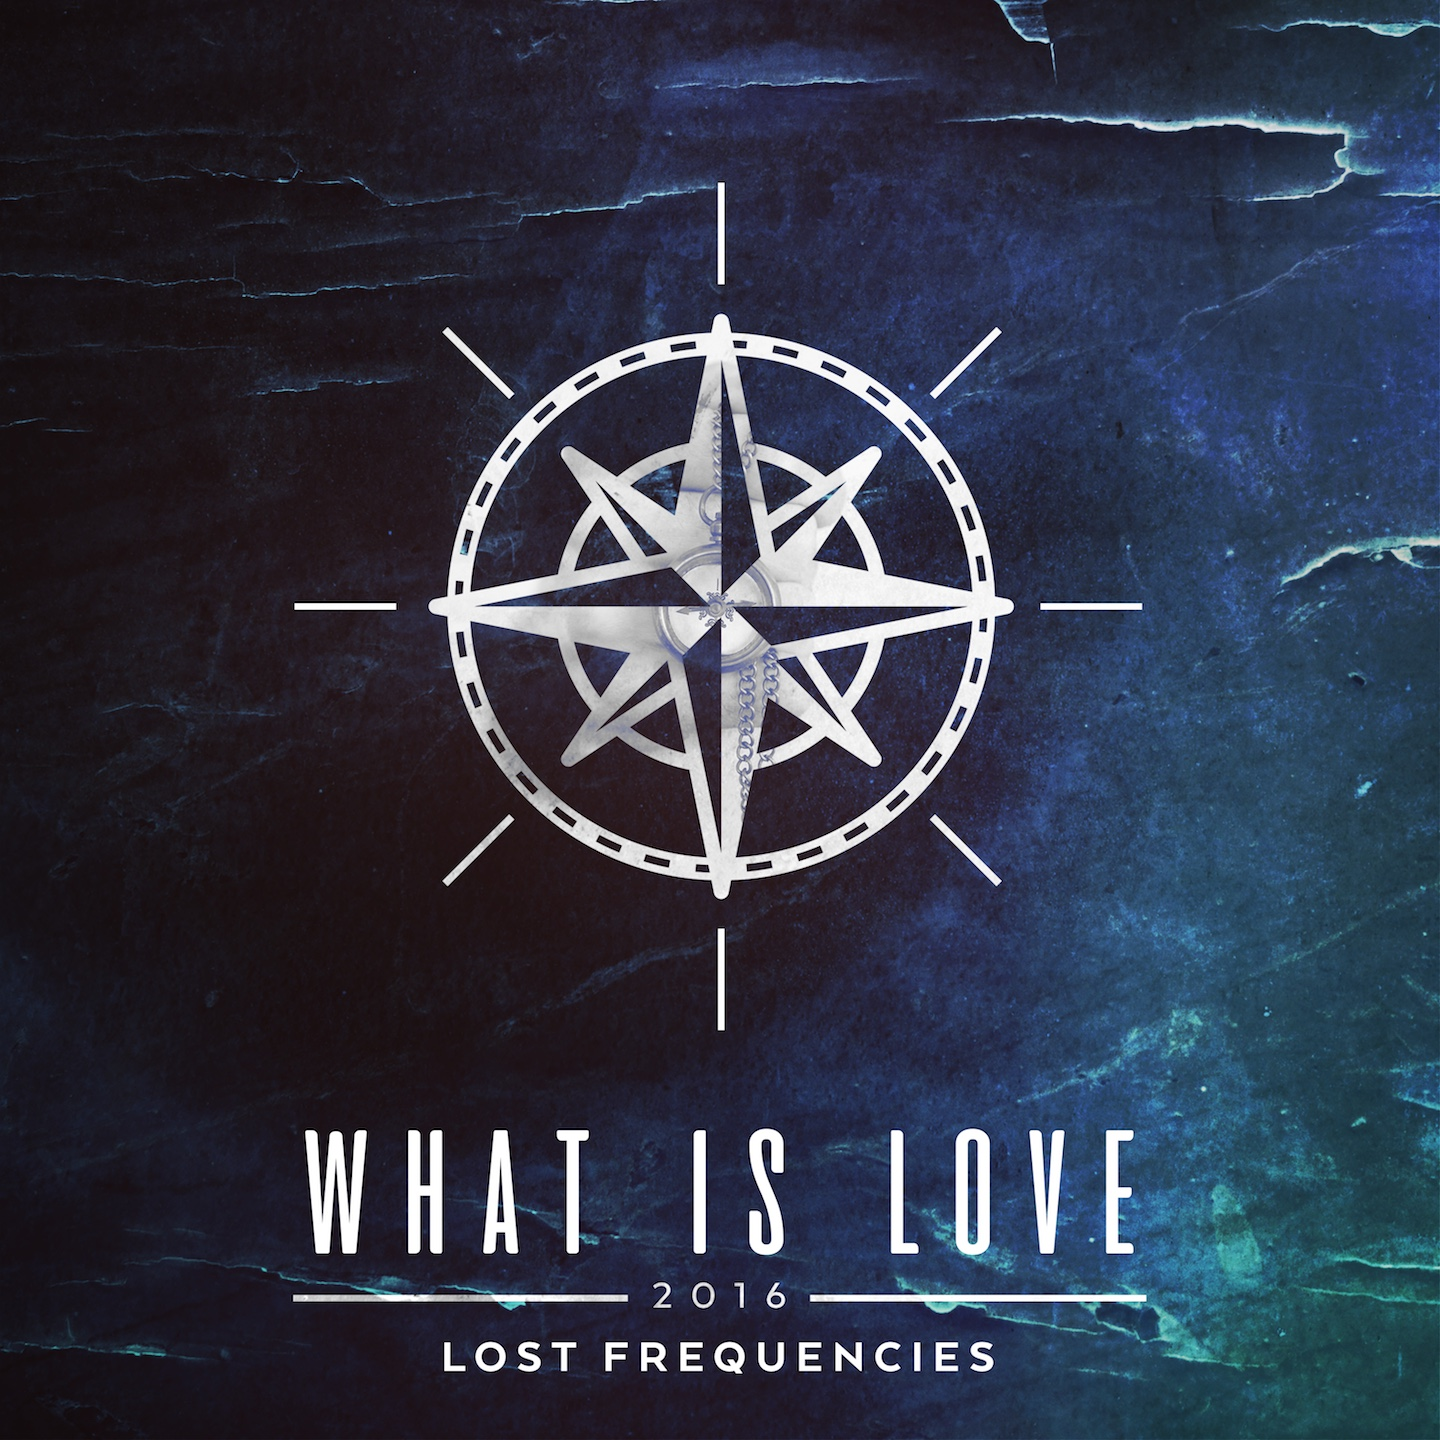 Lost Frequencies - What Is Love 2016 фото